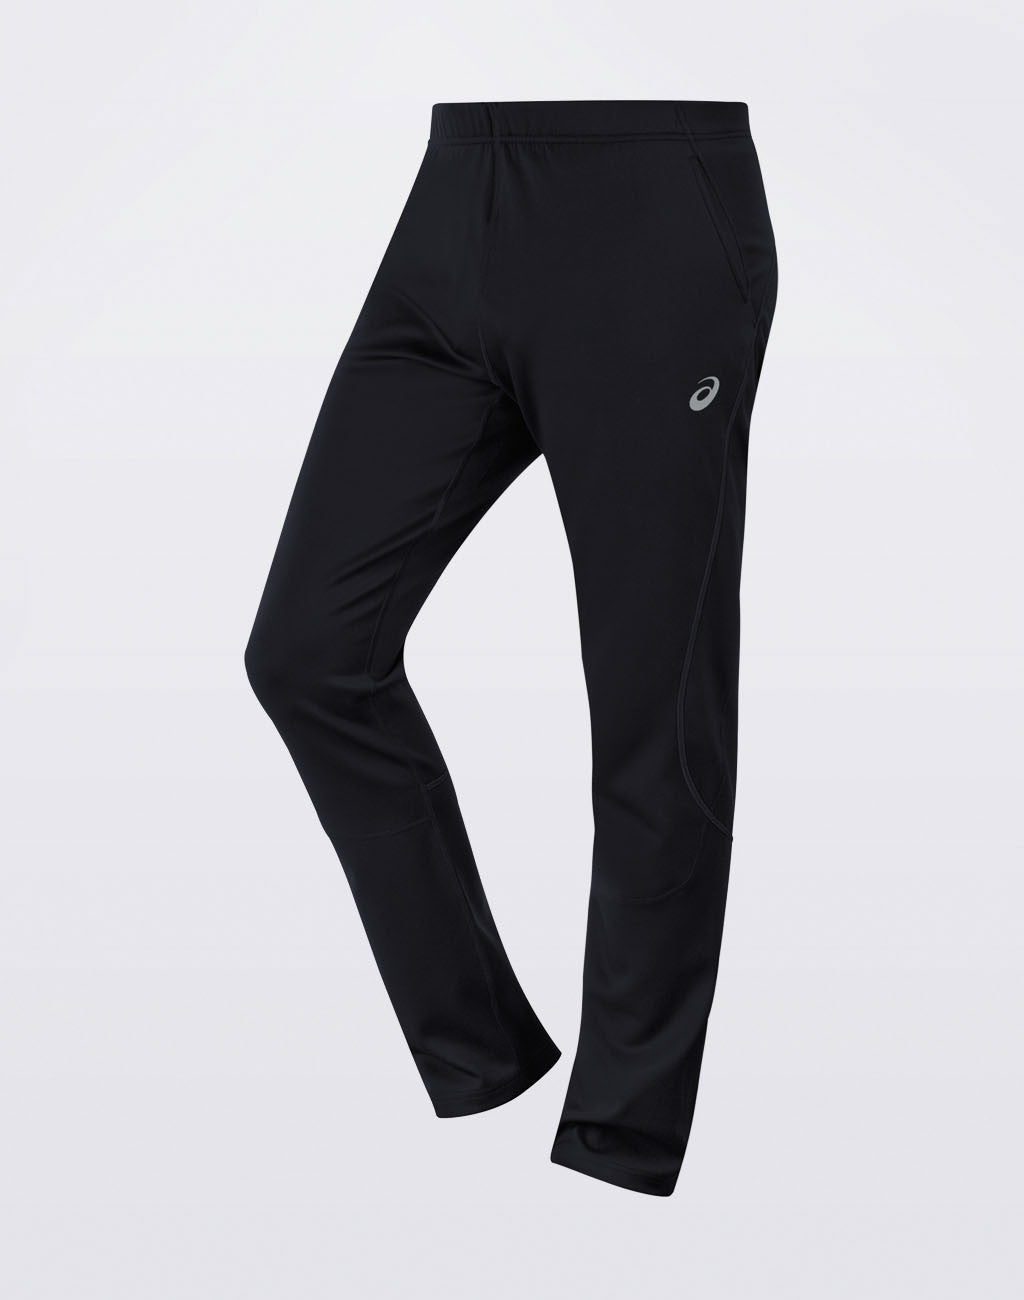 Thermal XP Slim Pant (Men's)